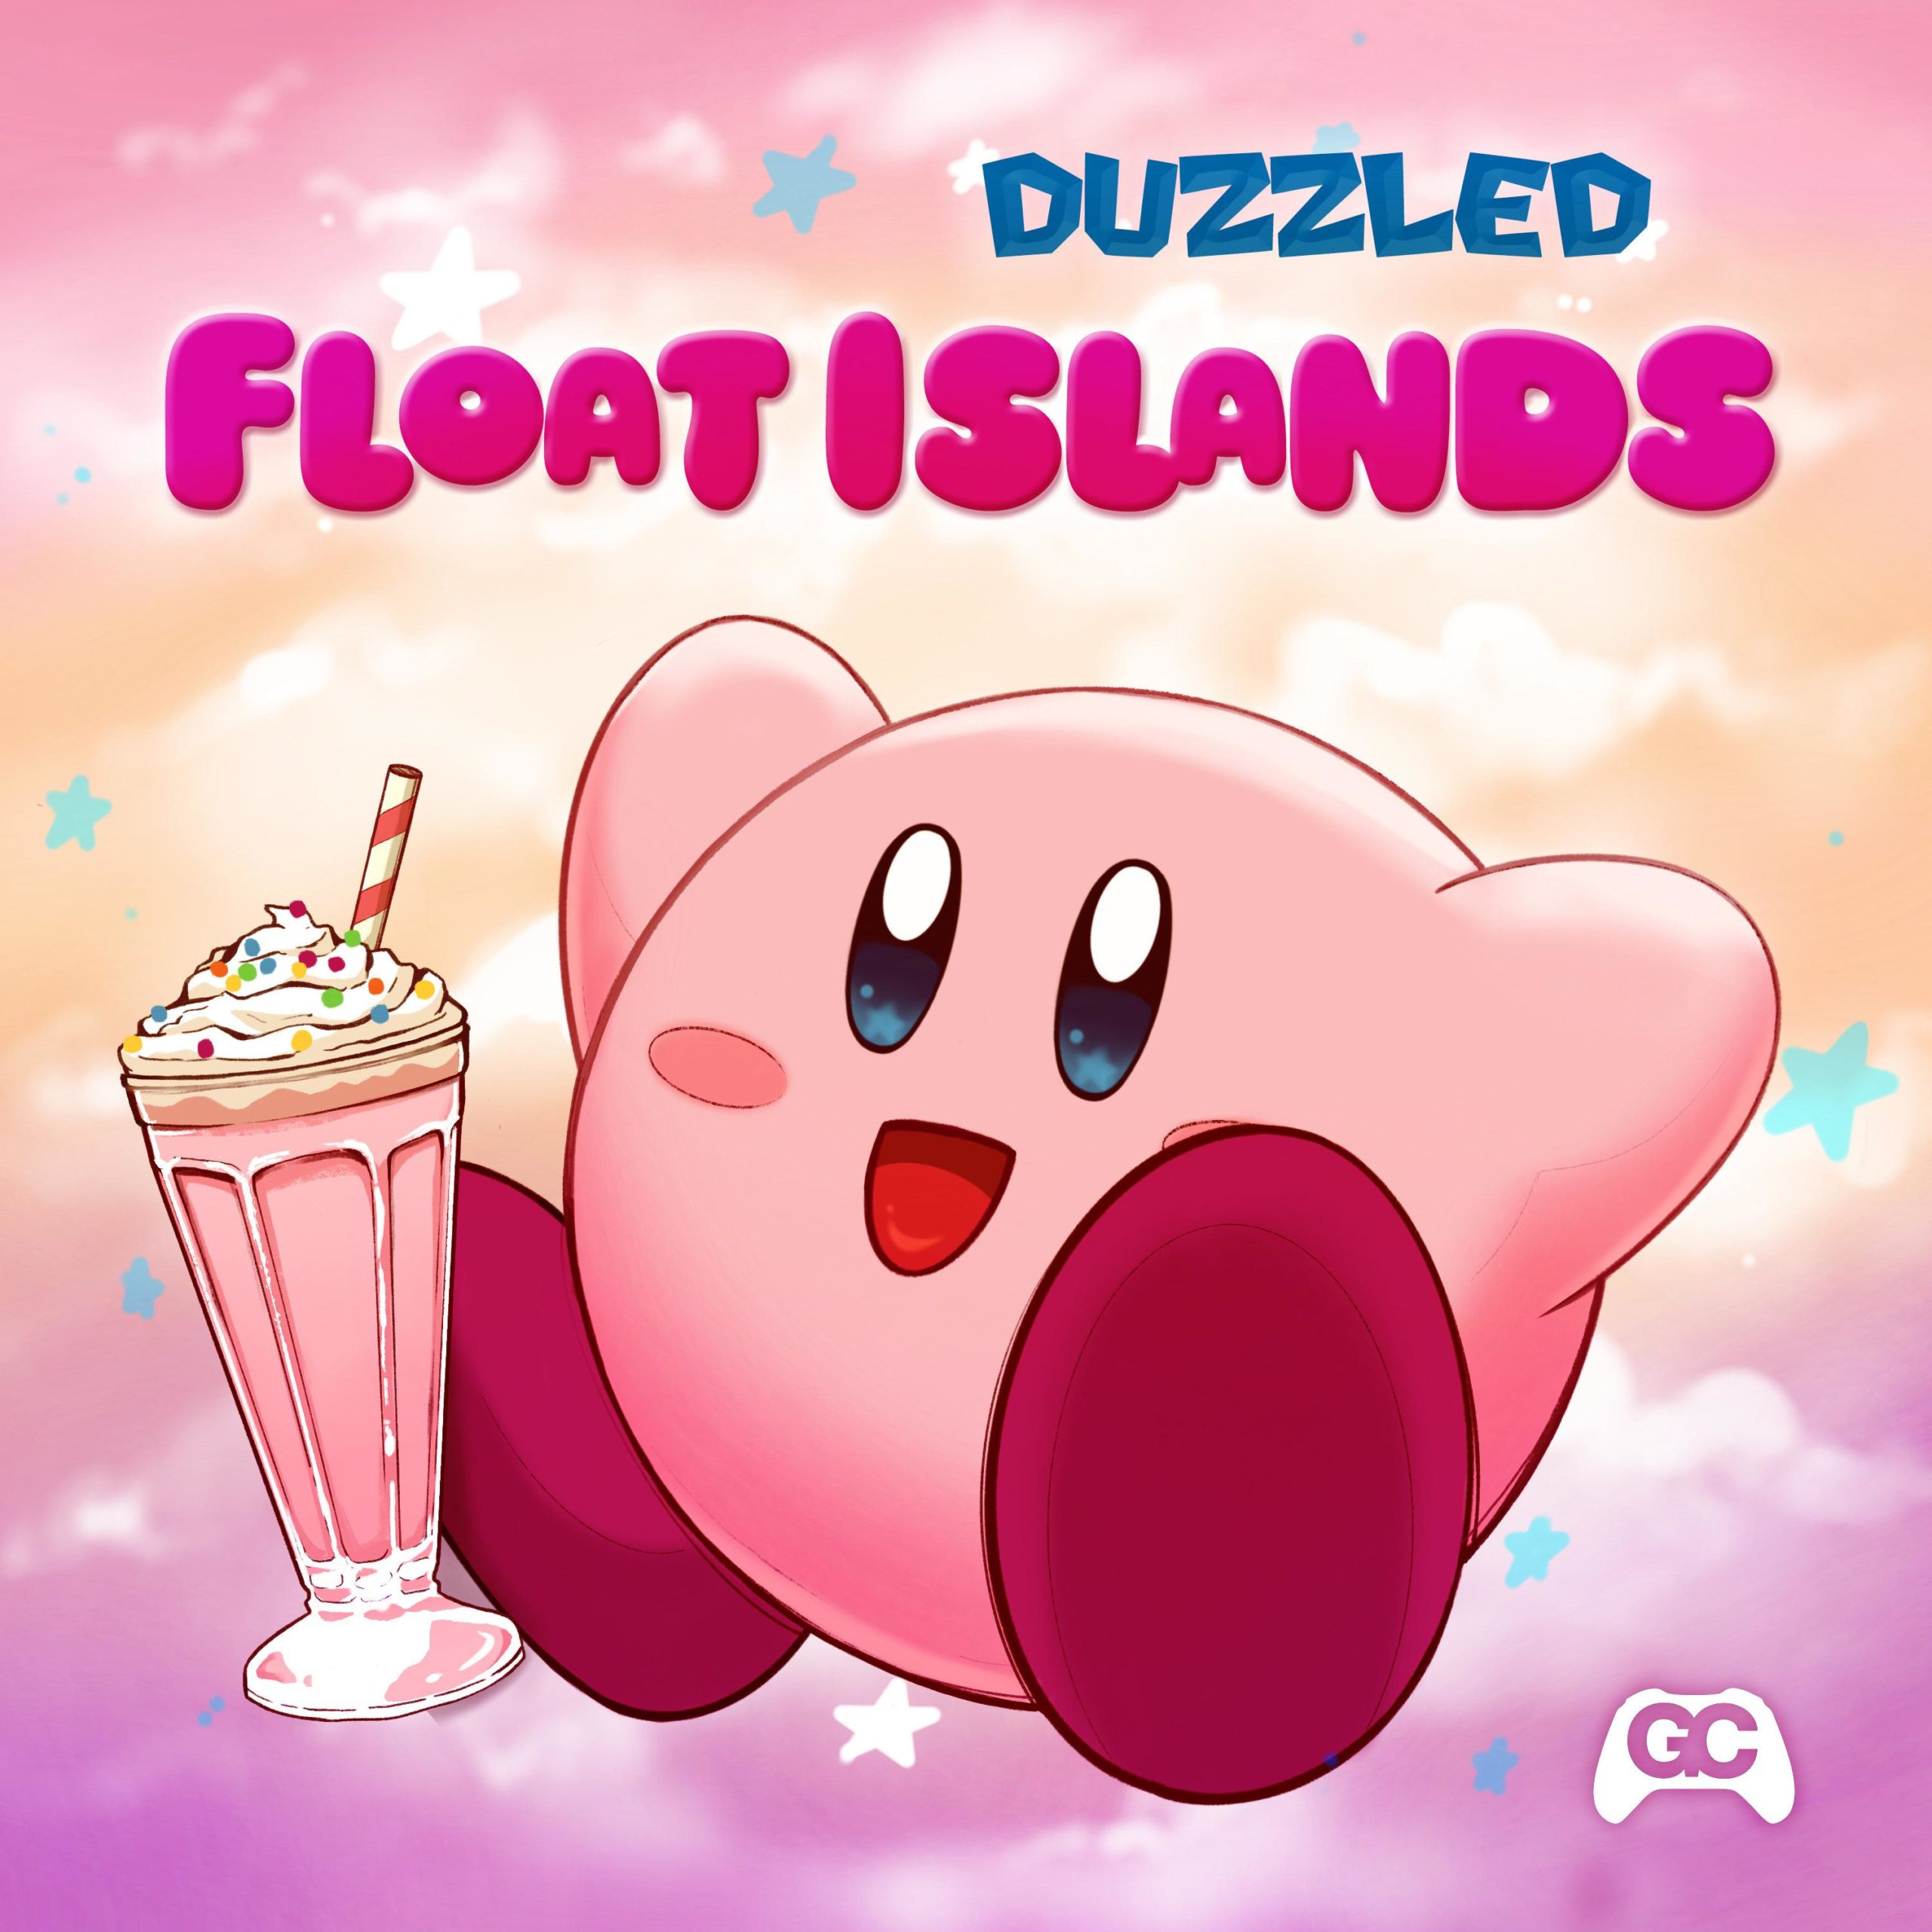 Float Islands – Duzzled